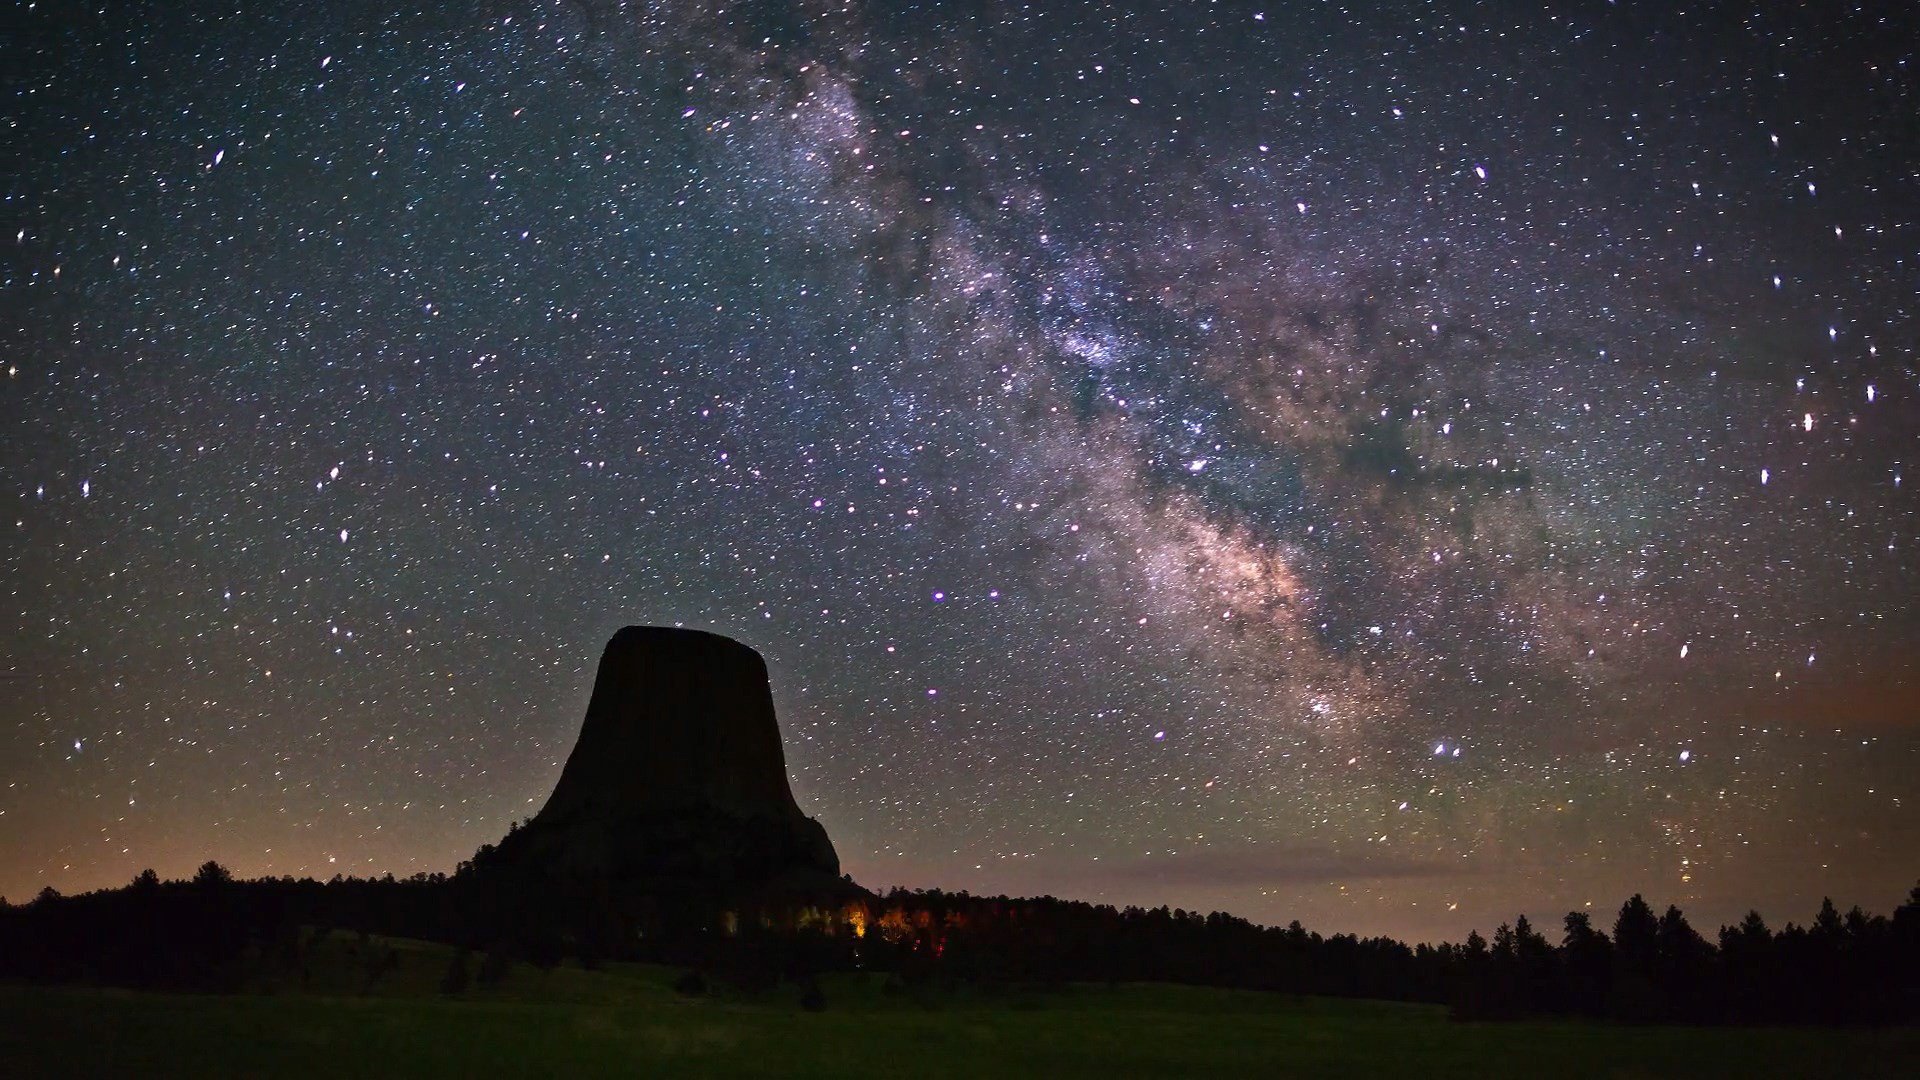 The Milky Way Wallpaper (72+ Images